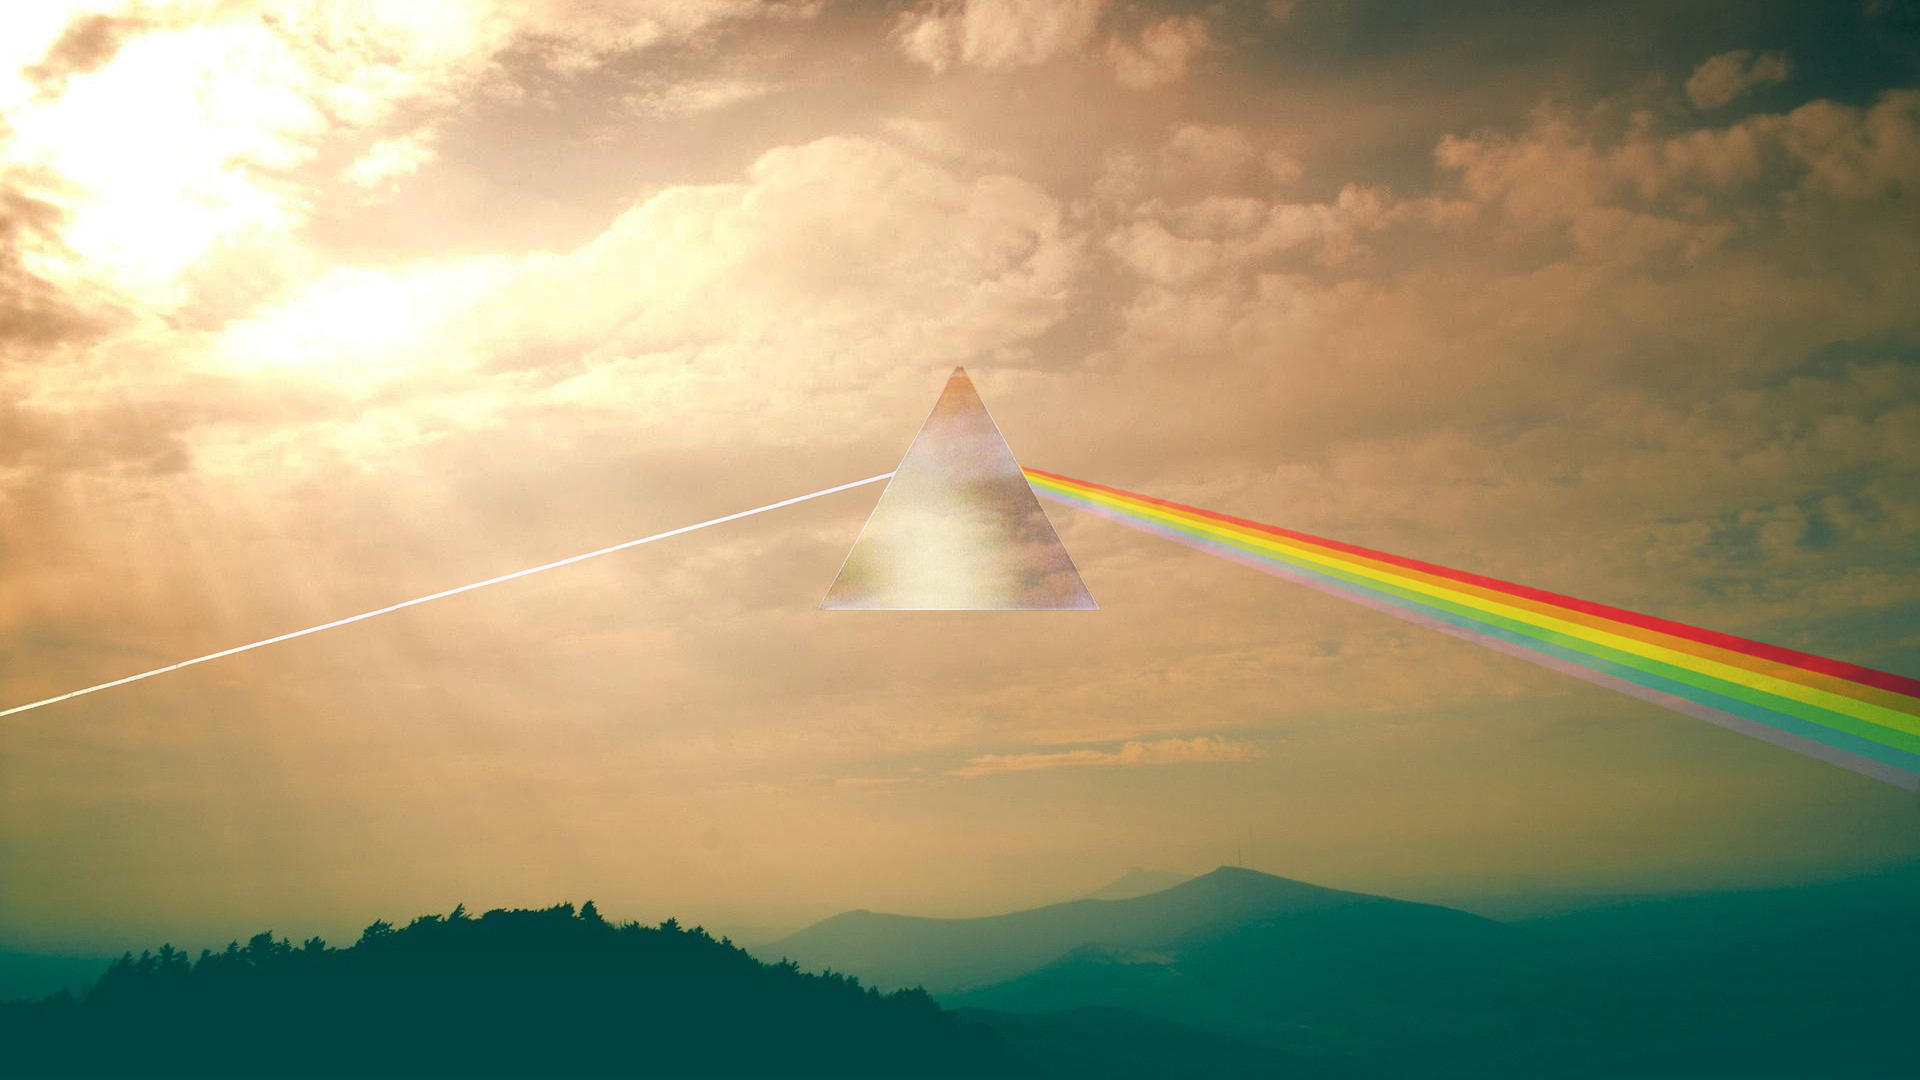 Dark Side Of The Moon Inspired Wallpaper Oc 1920x1080 Pinkfloyd